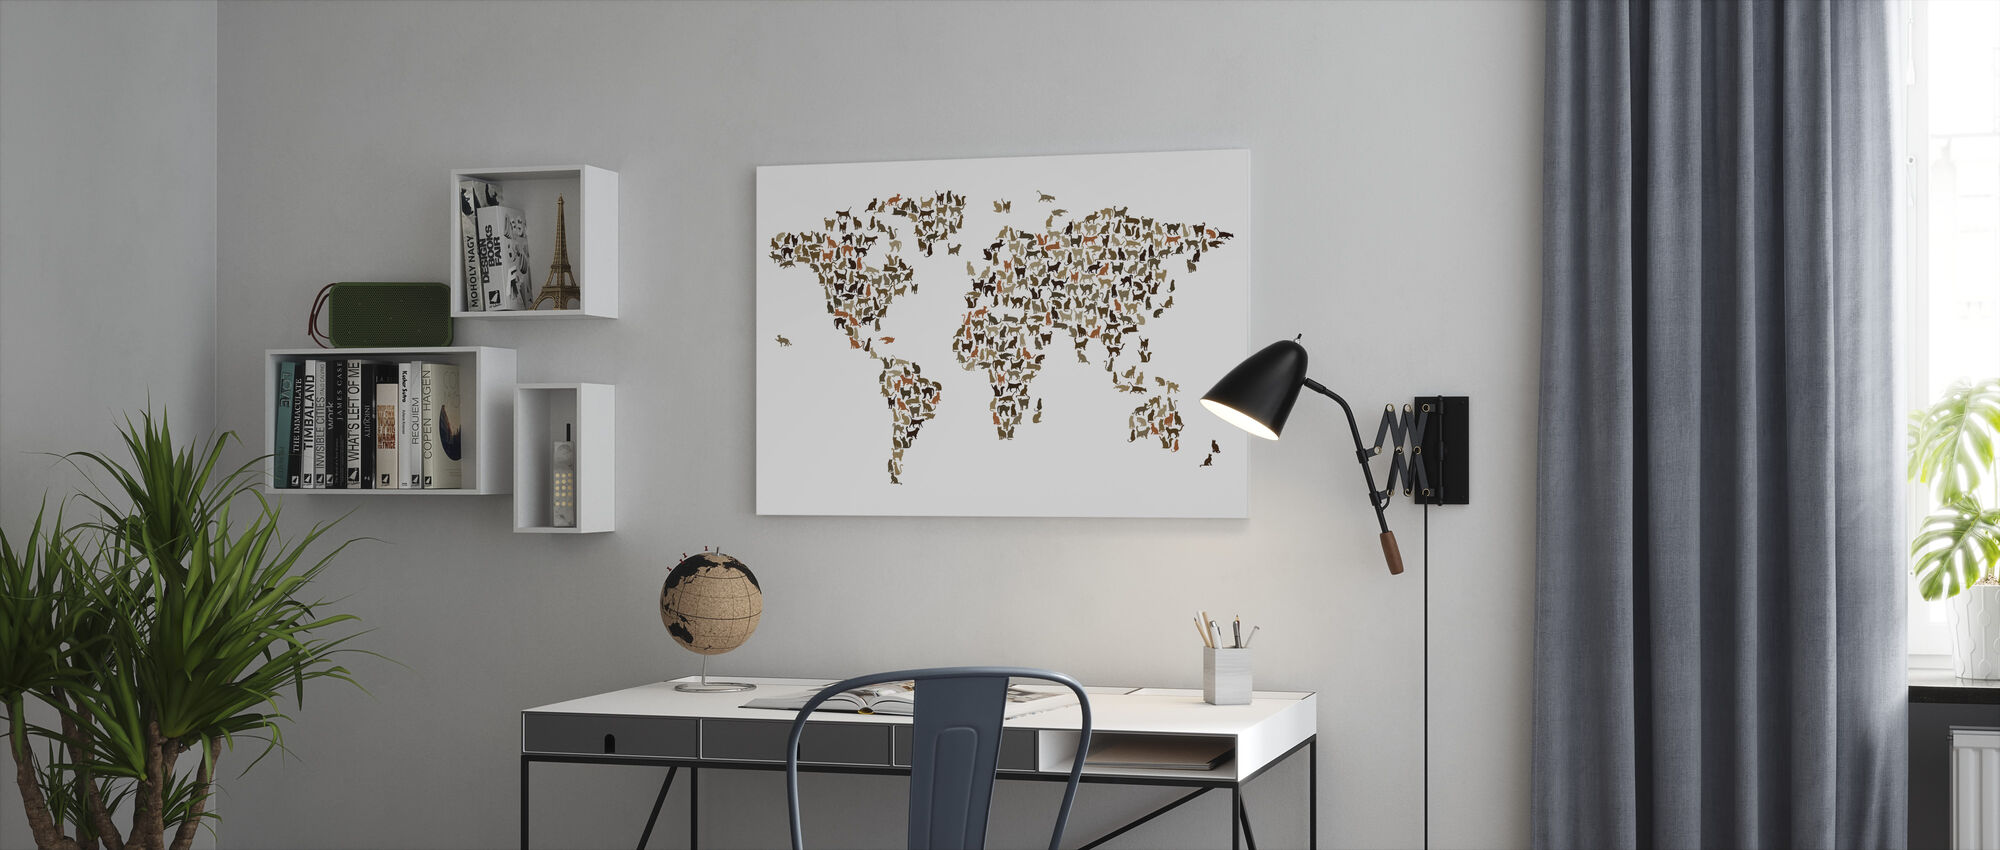 Cats World Map - Canvas print - Office